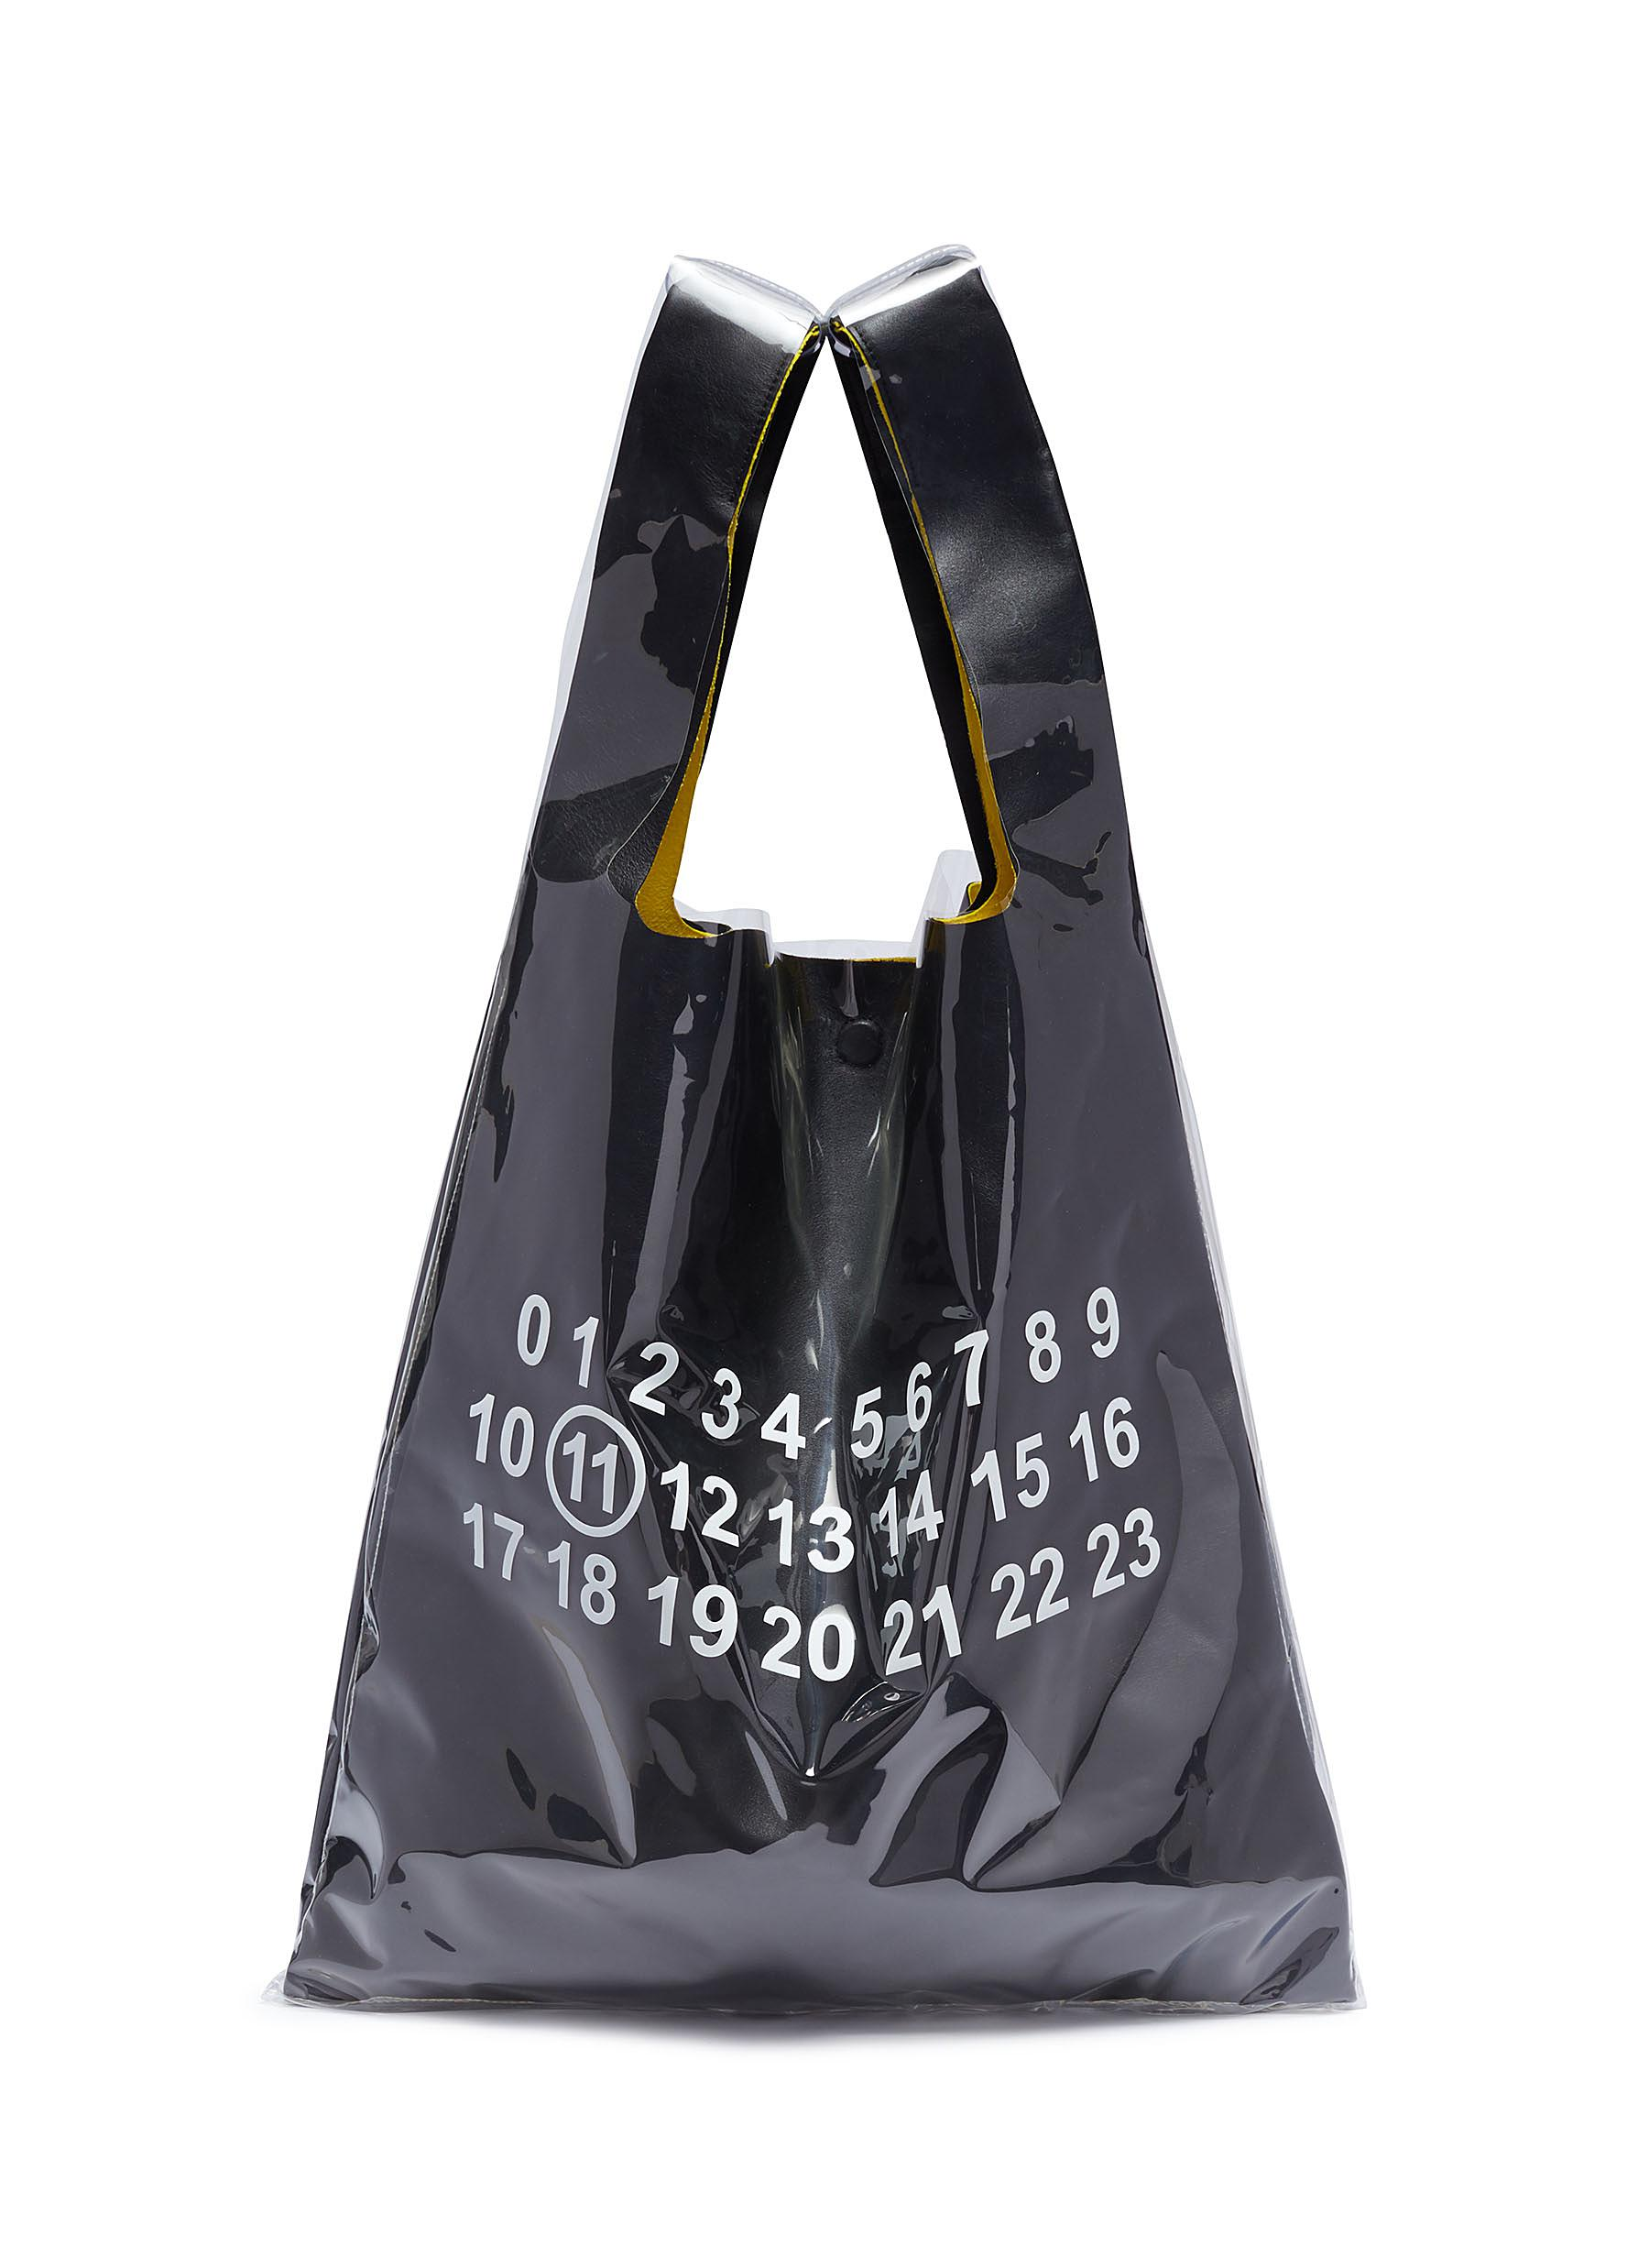 a0659bf863ba7 Main View - Click To Enlarge - Maison Margiela - PVC coated leather tote bag